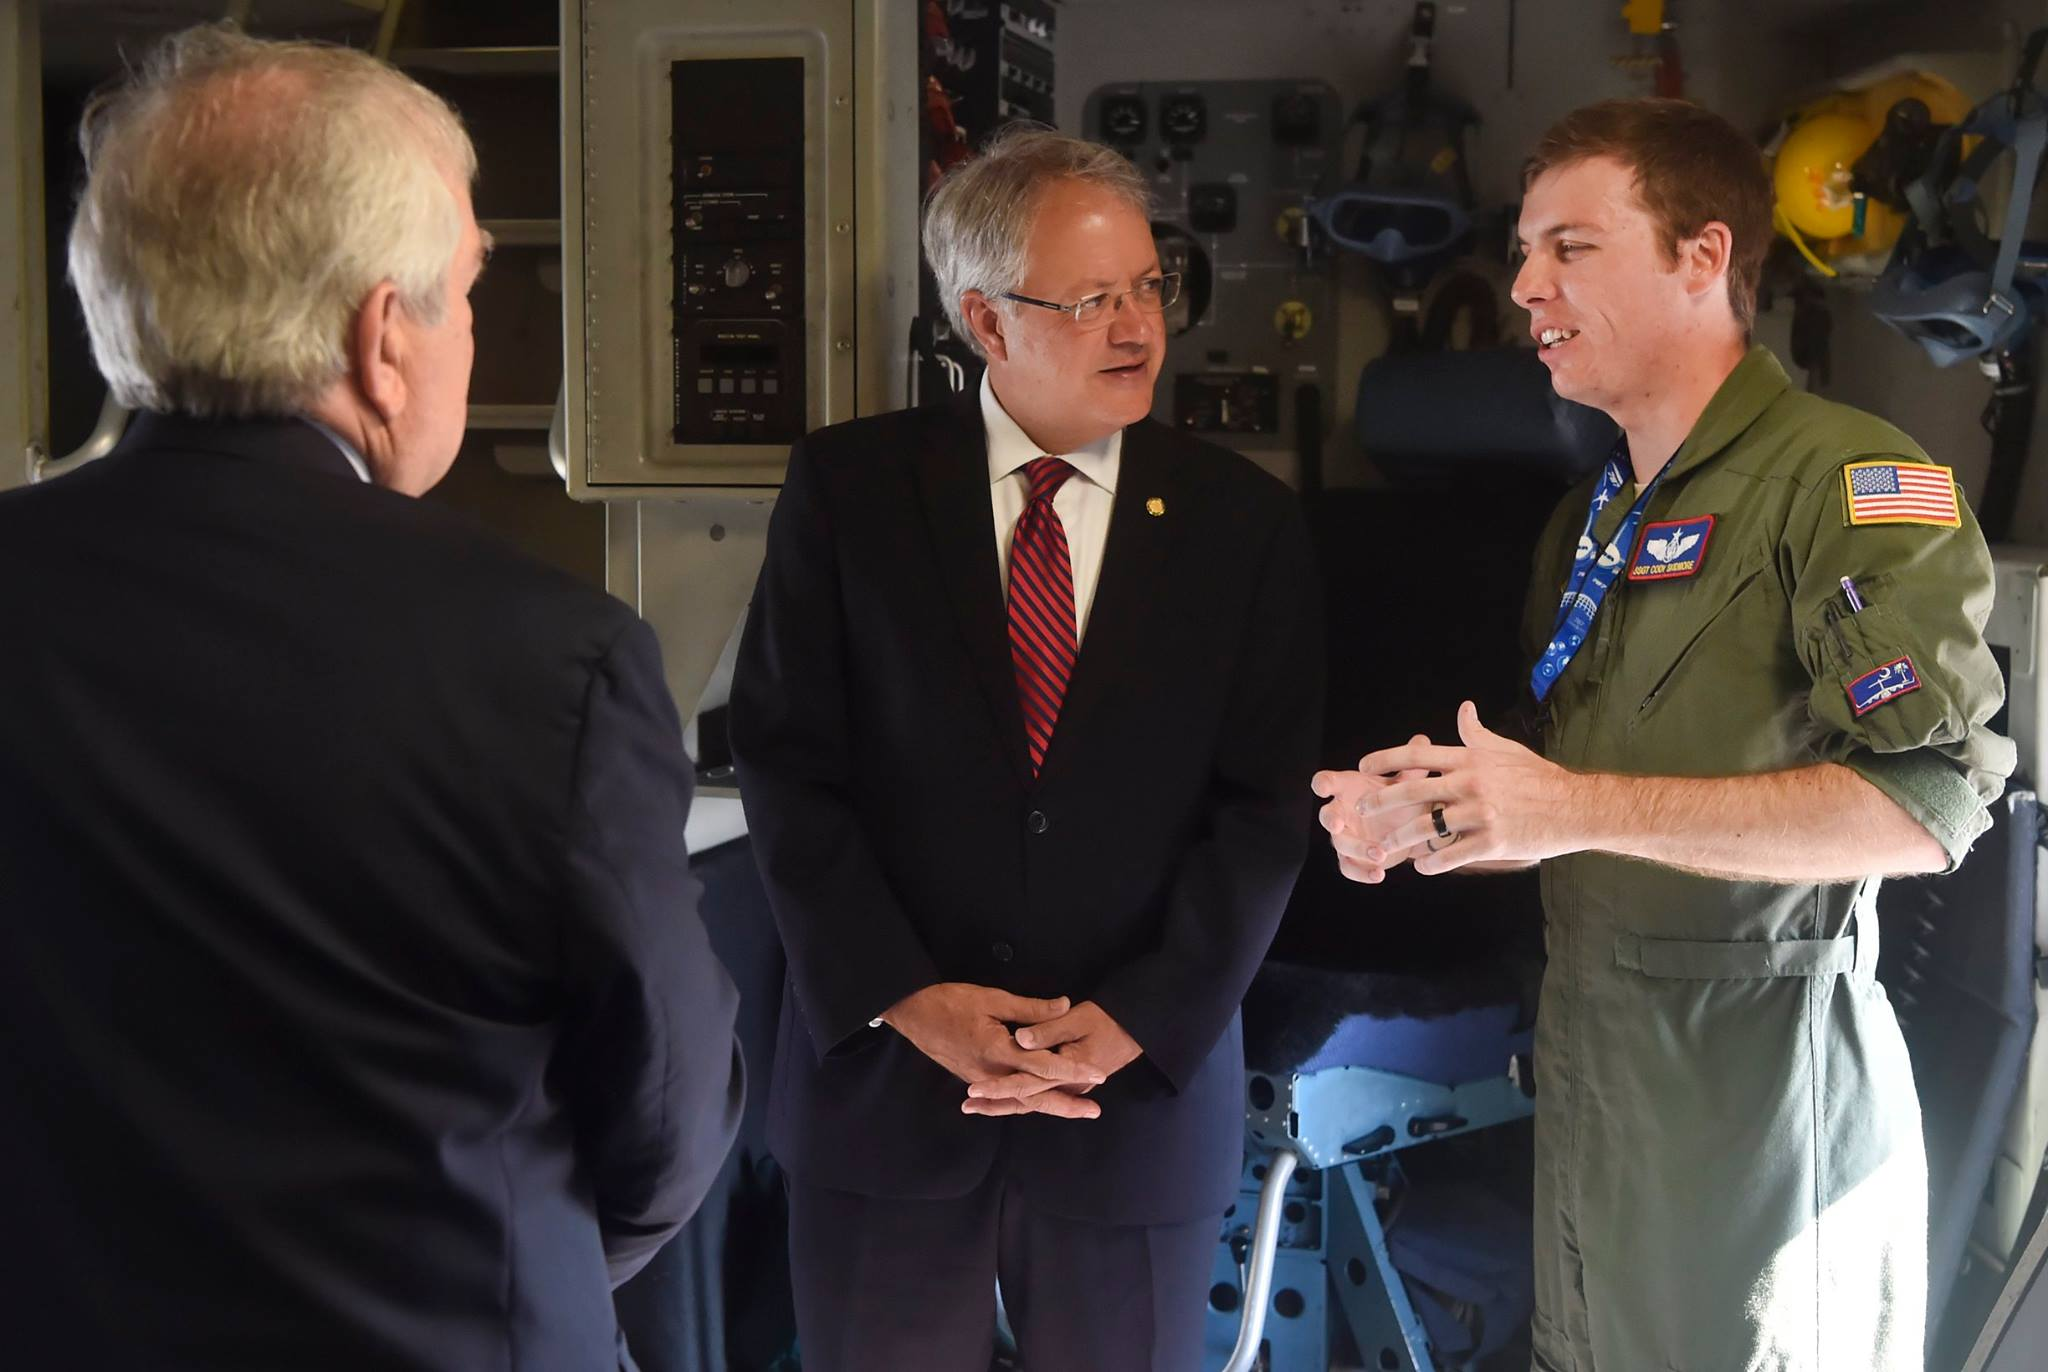 Photography from Joint Base Charleston. Beloved Mayor Tecklenburg in conversation.